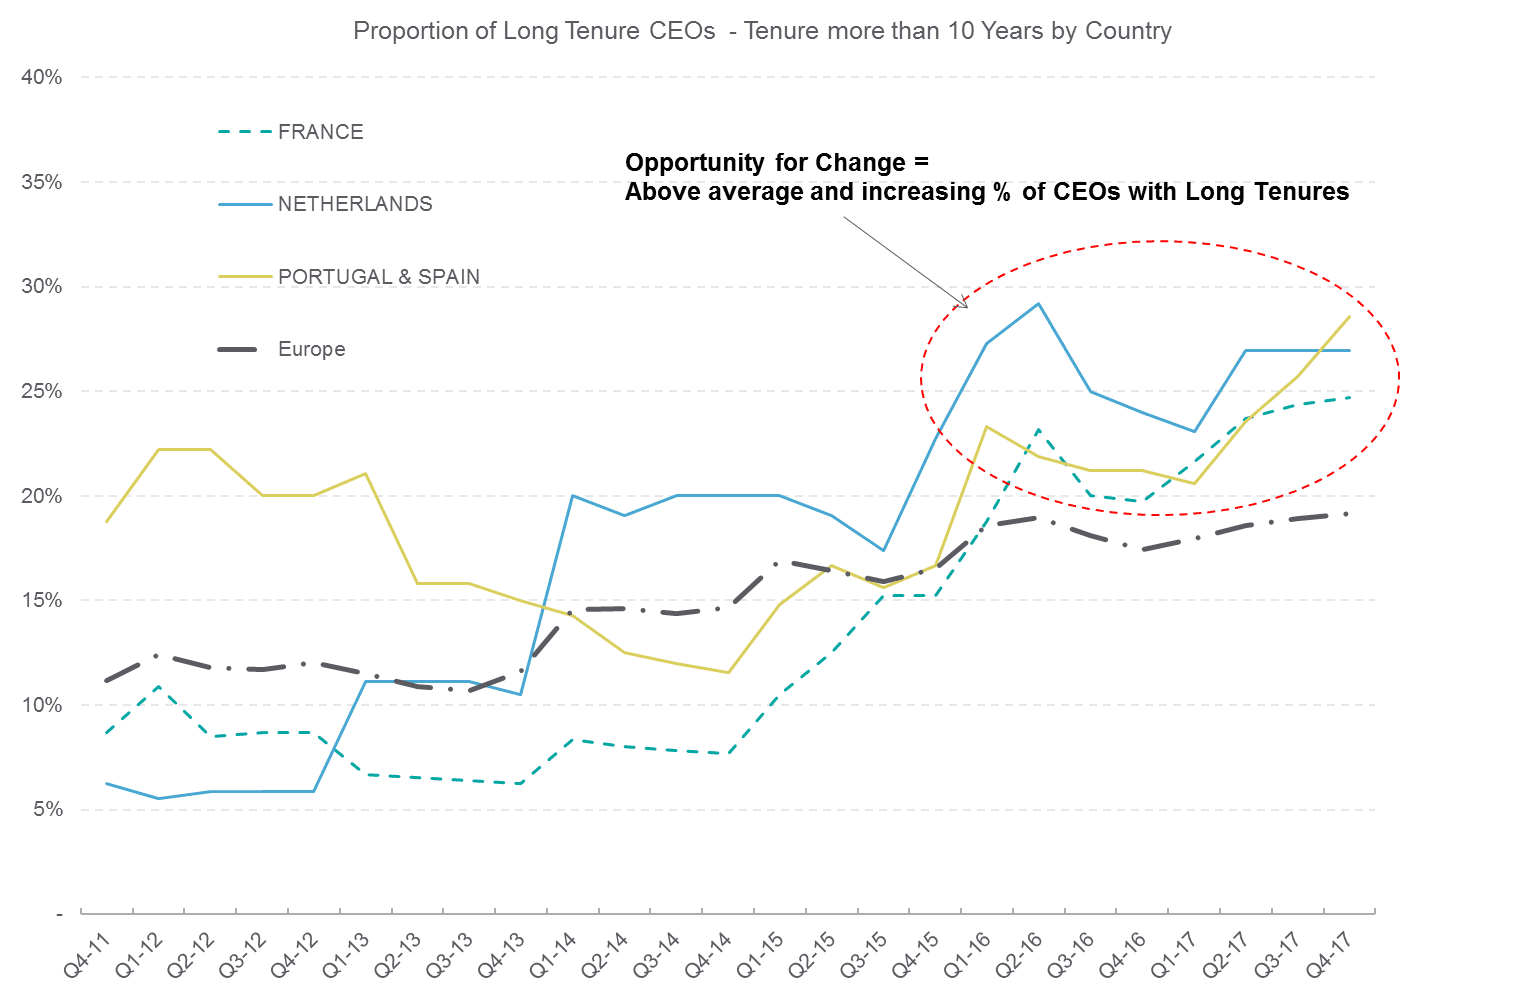 Proportion lof Long Tenure CEOs by country